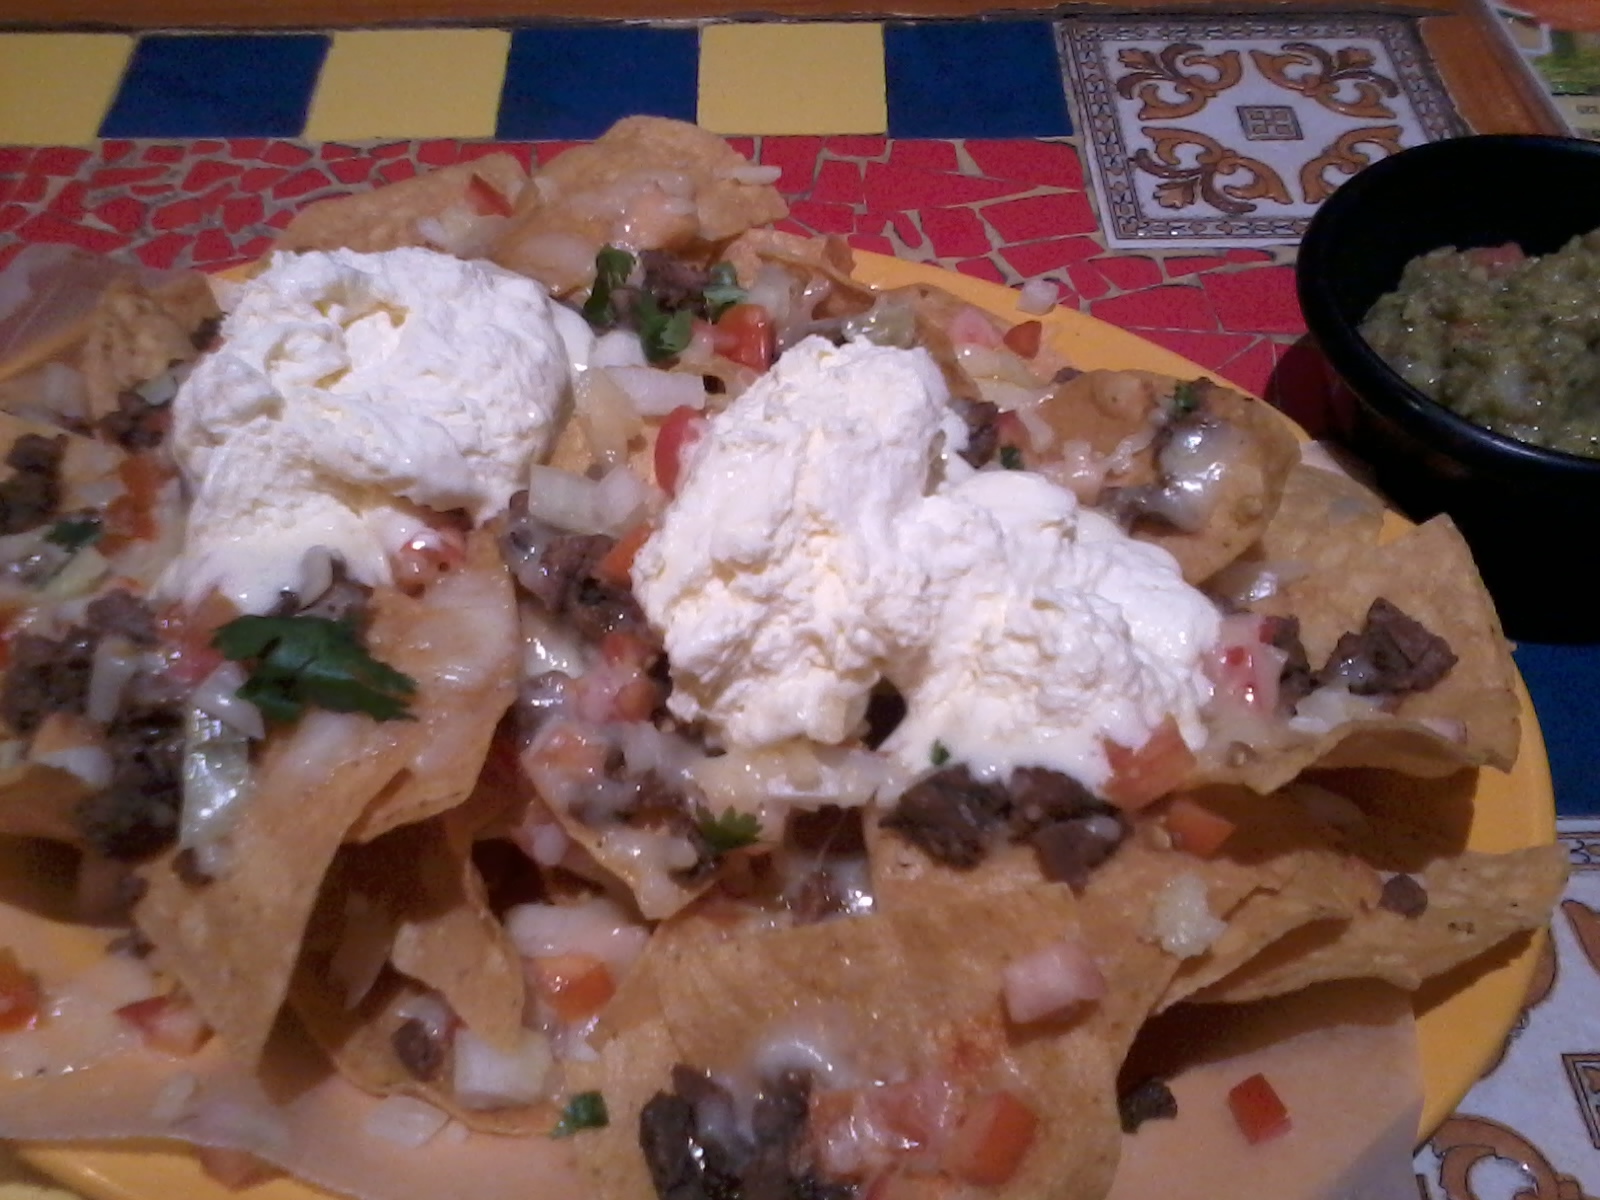 BAJA MEXICAN CANTINA: WHERE ALL YOUR MEXICAN CRAVINGS SATISFIED ...